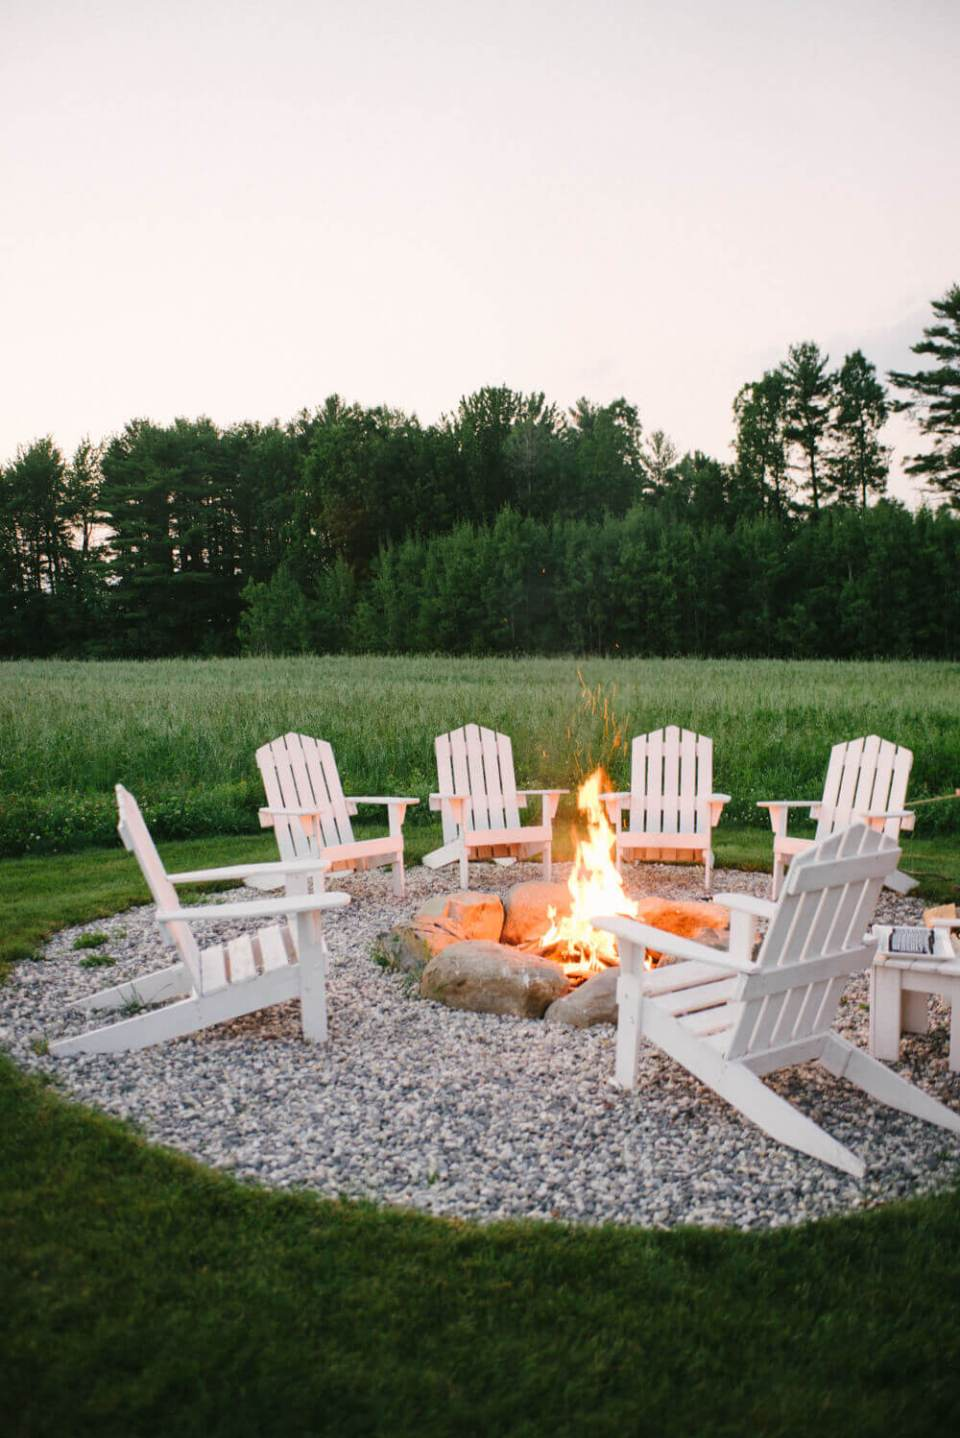 An Enjoyable Sunset by the Fire | Awesome Firepit Area Ideas For Your Outdoor Activities